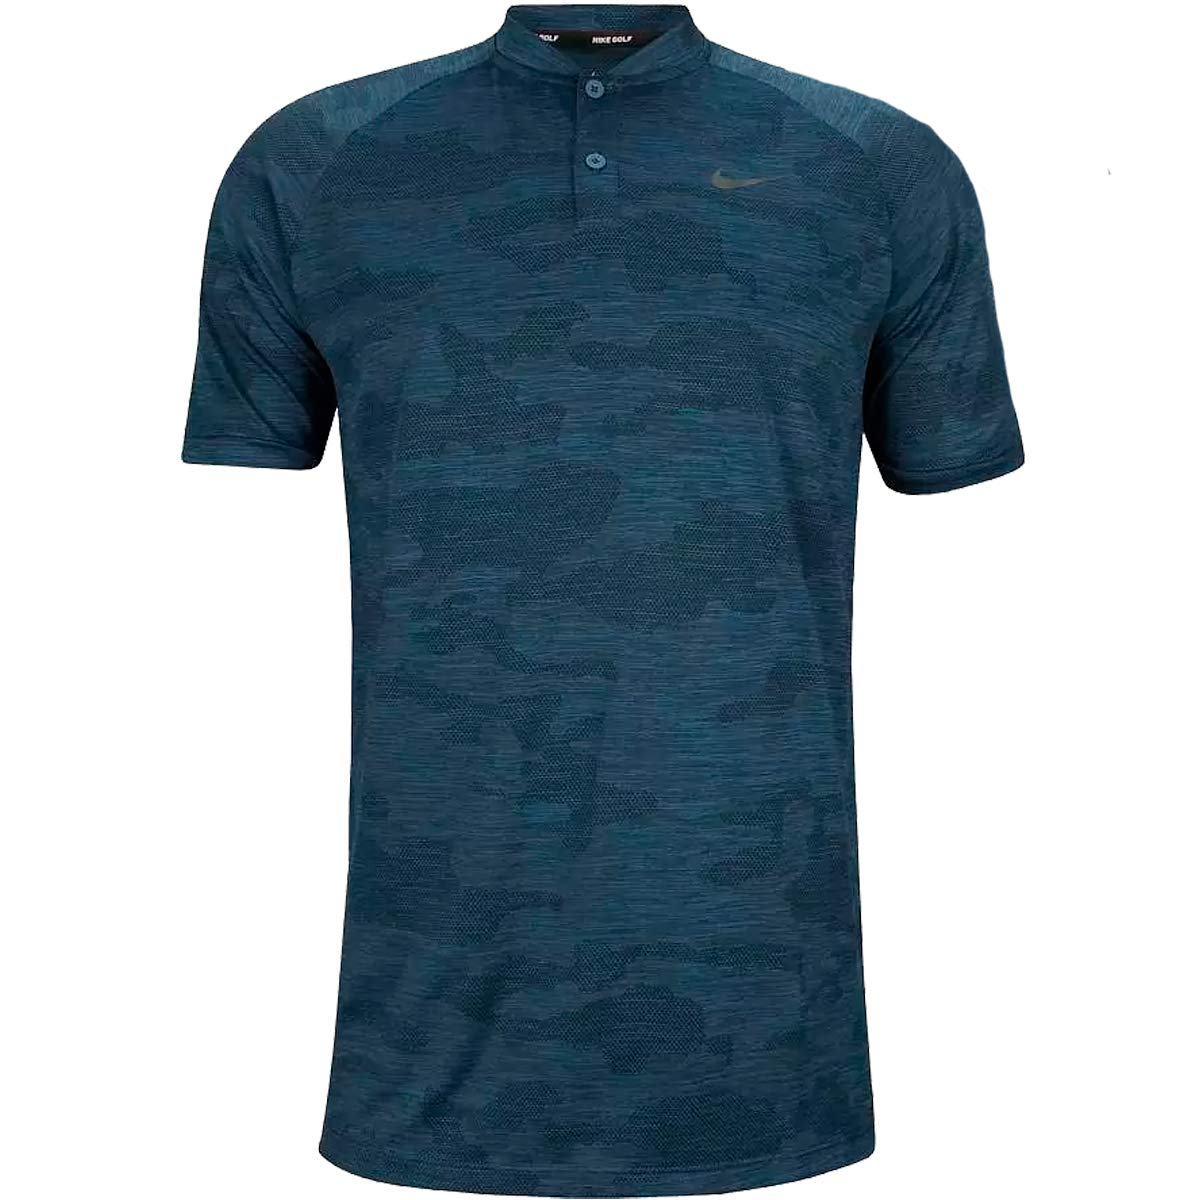 Nike Golf TW Tiger Woods Vapor Zonal Cooling Camo Polo 932390 (Small, Gym Blue)